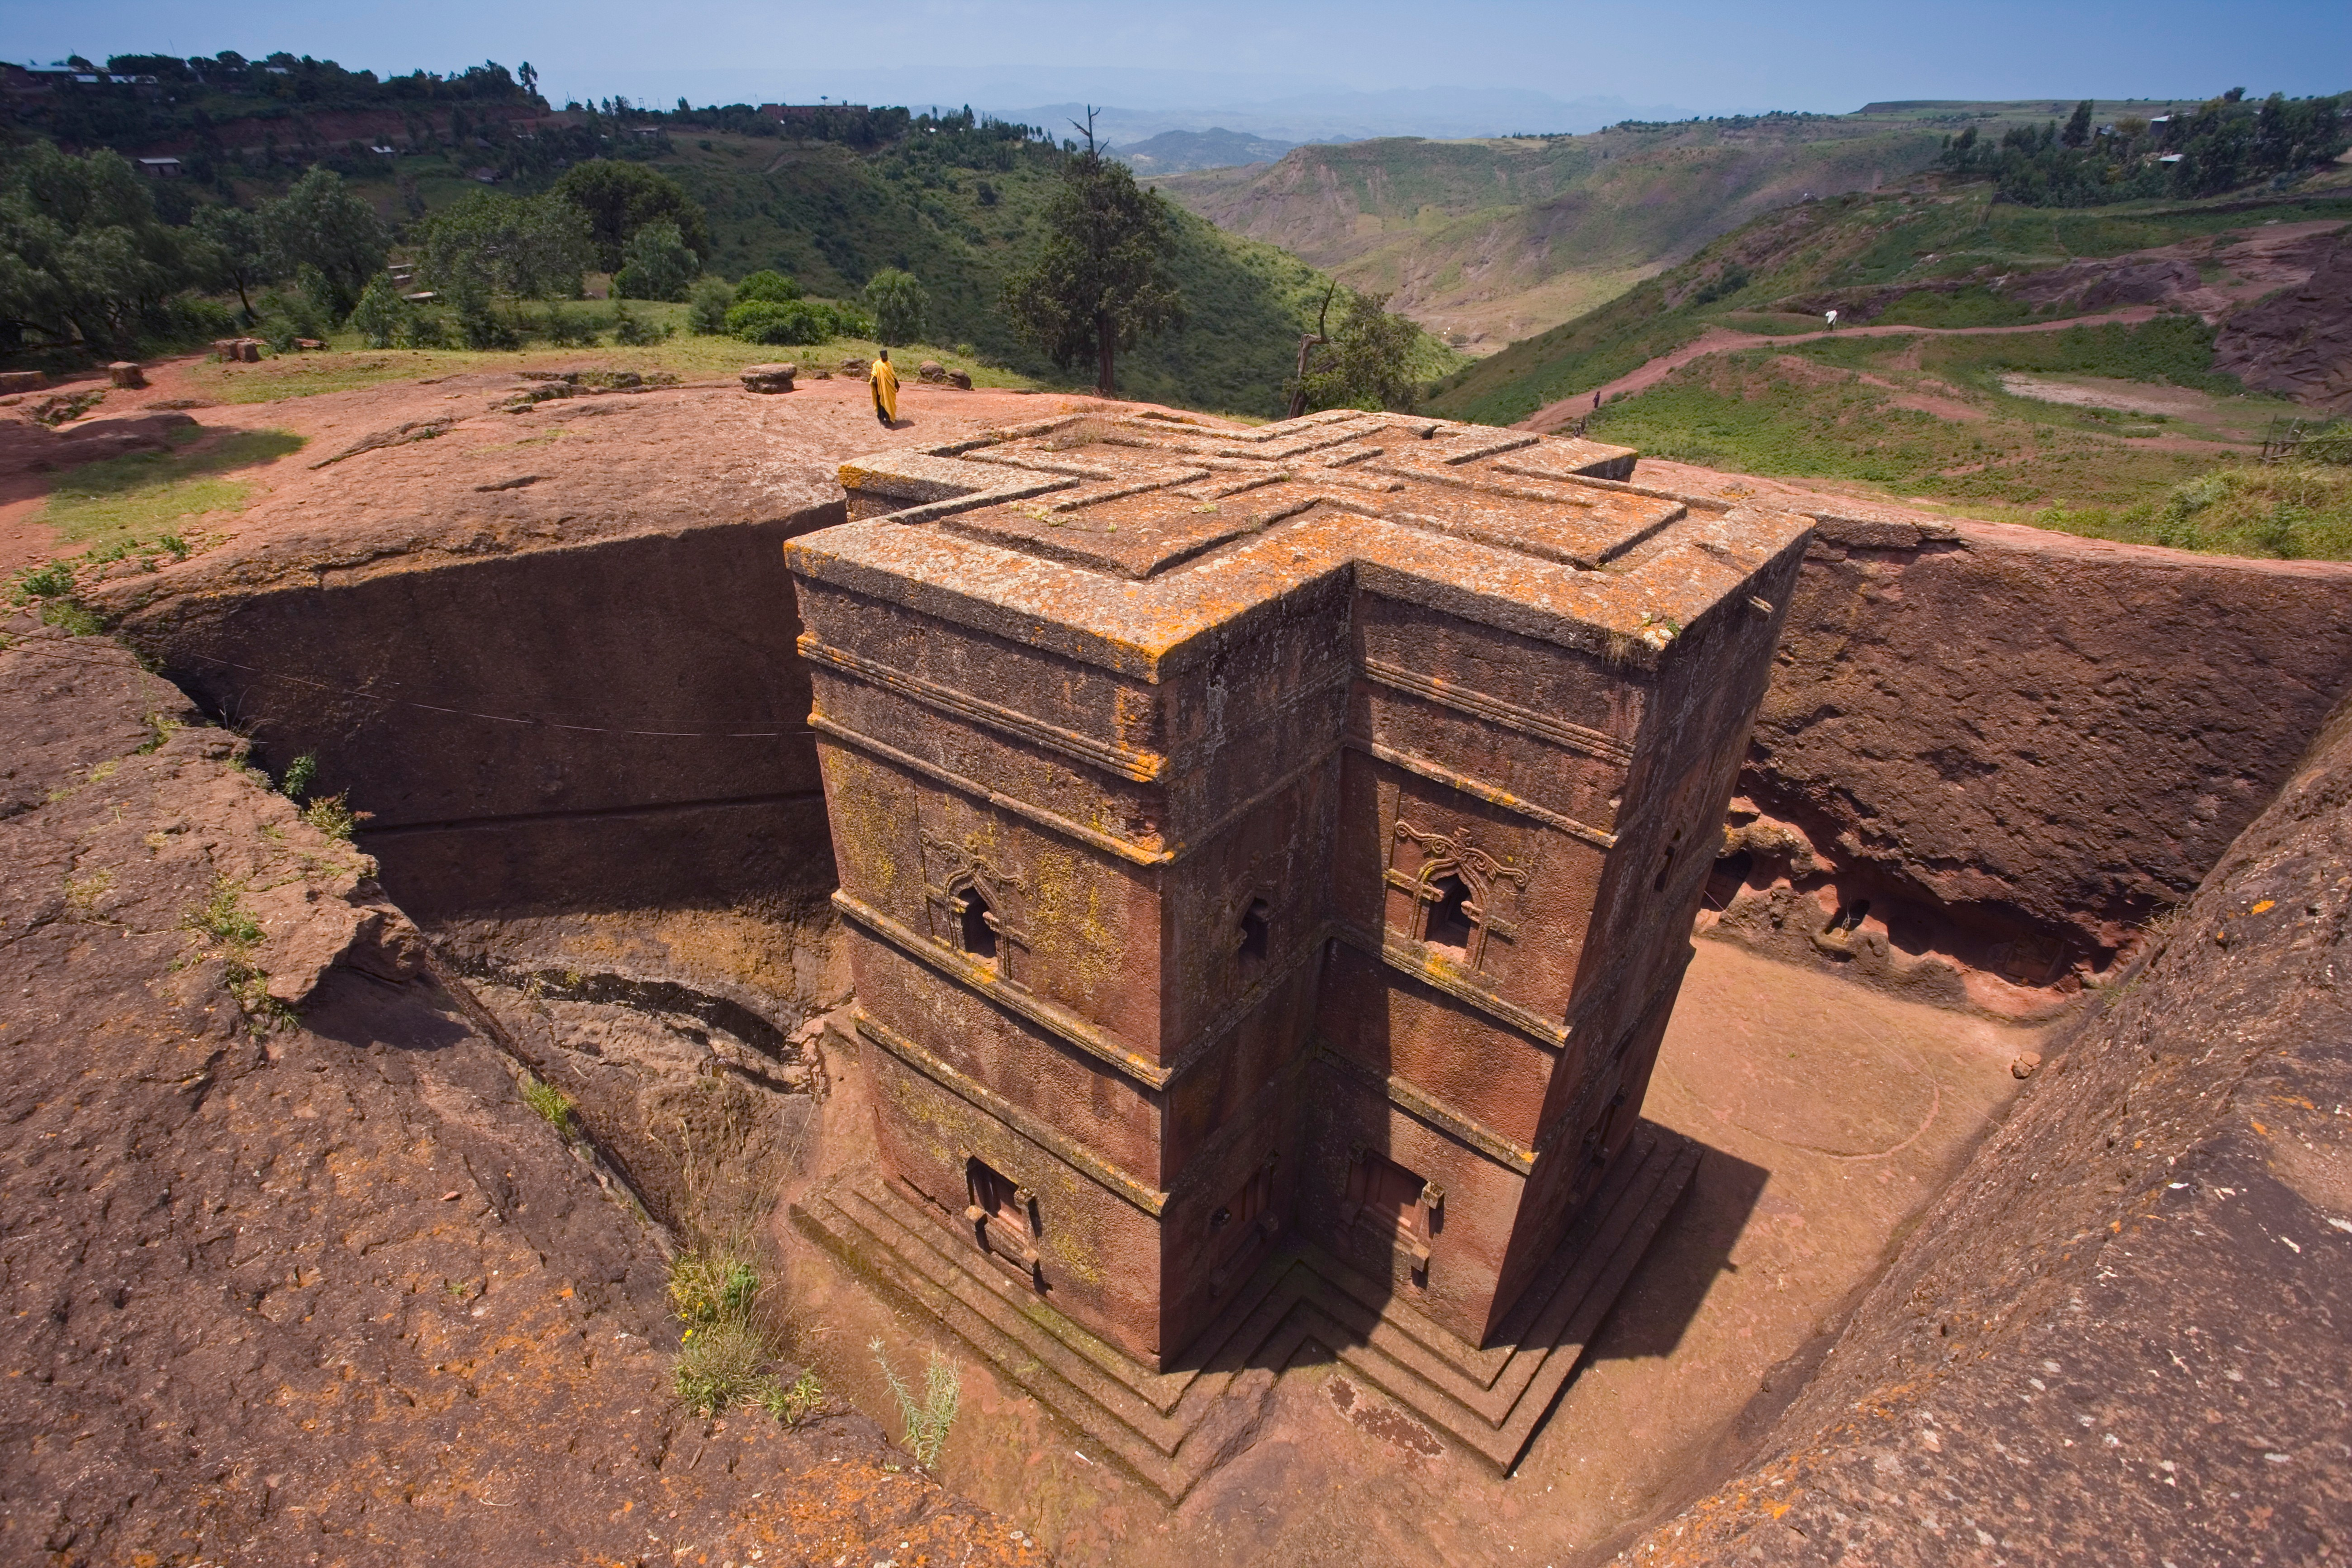 The Sunken Rock Hewn church of Bet Giyorgis (St  George), Lalibela, Northern Ethiopia, Ethiopia, Africa *** Local Caption *** The most famous of Lalibela's Rock Hewn churches, The Sunken Rock Hewn church of Bet Giyorgis, 'St. George', dating from the 12th Century, Lalibela's Rock Hewn Churches rank amoung the greatest religio-historical sites, not only in the African continent but in the Christian World